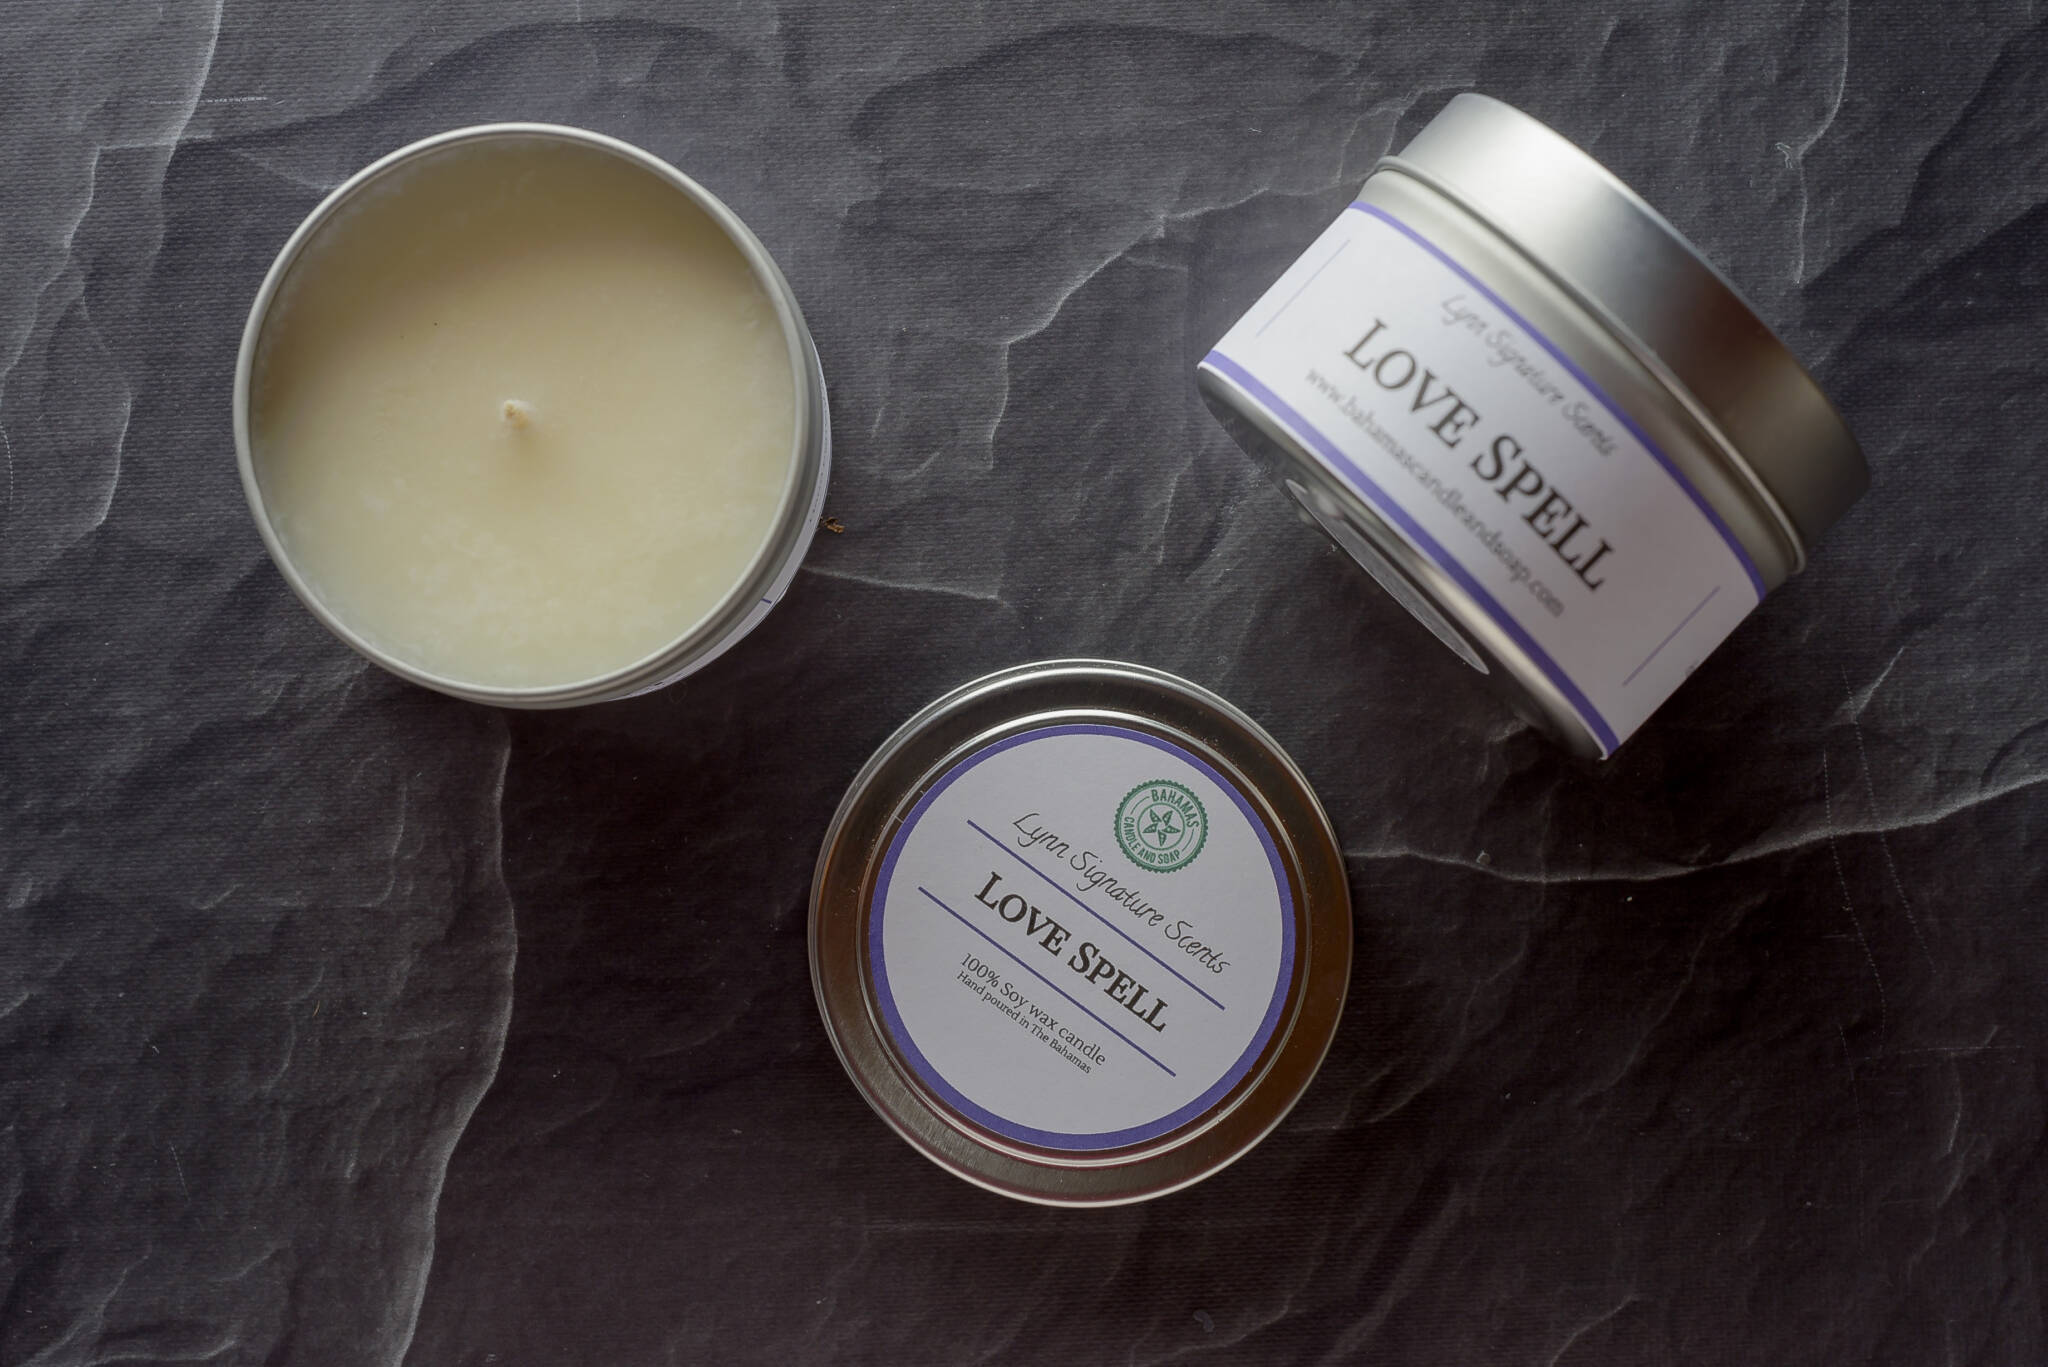 Love Spell Handmade Soy Wax Candle